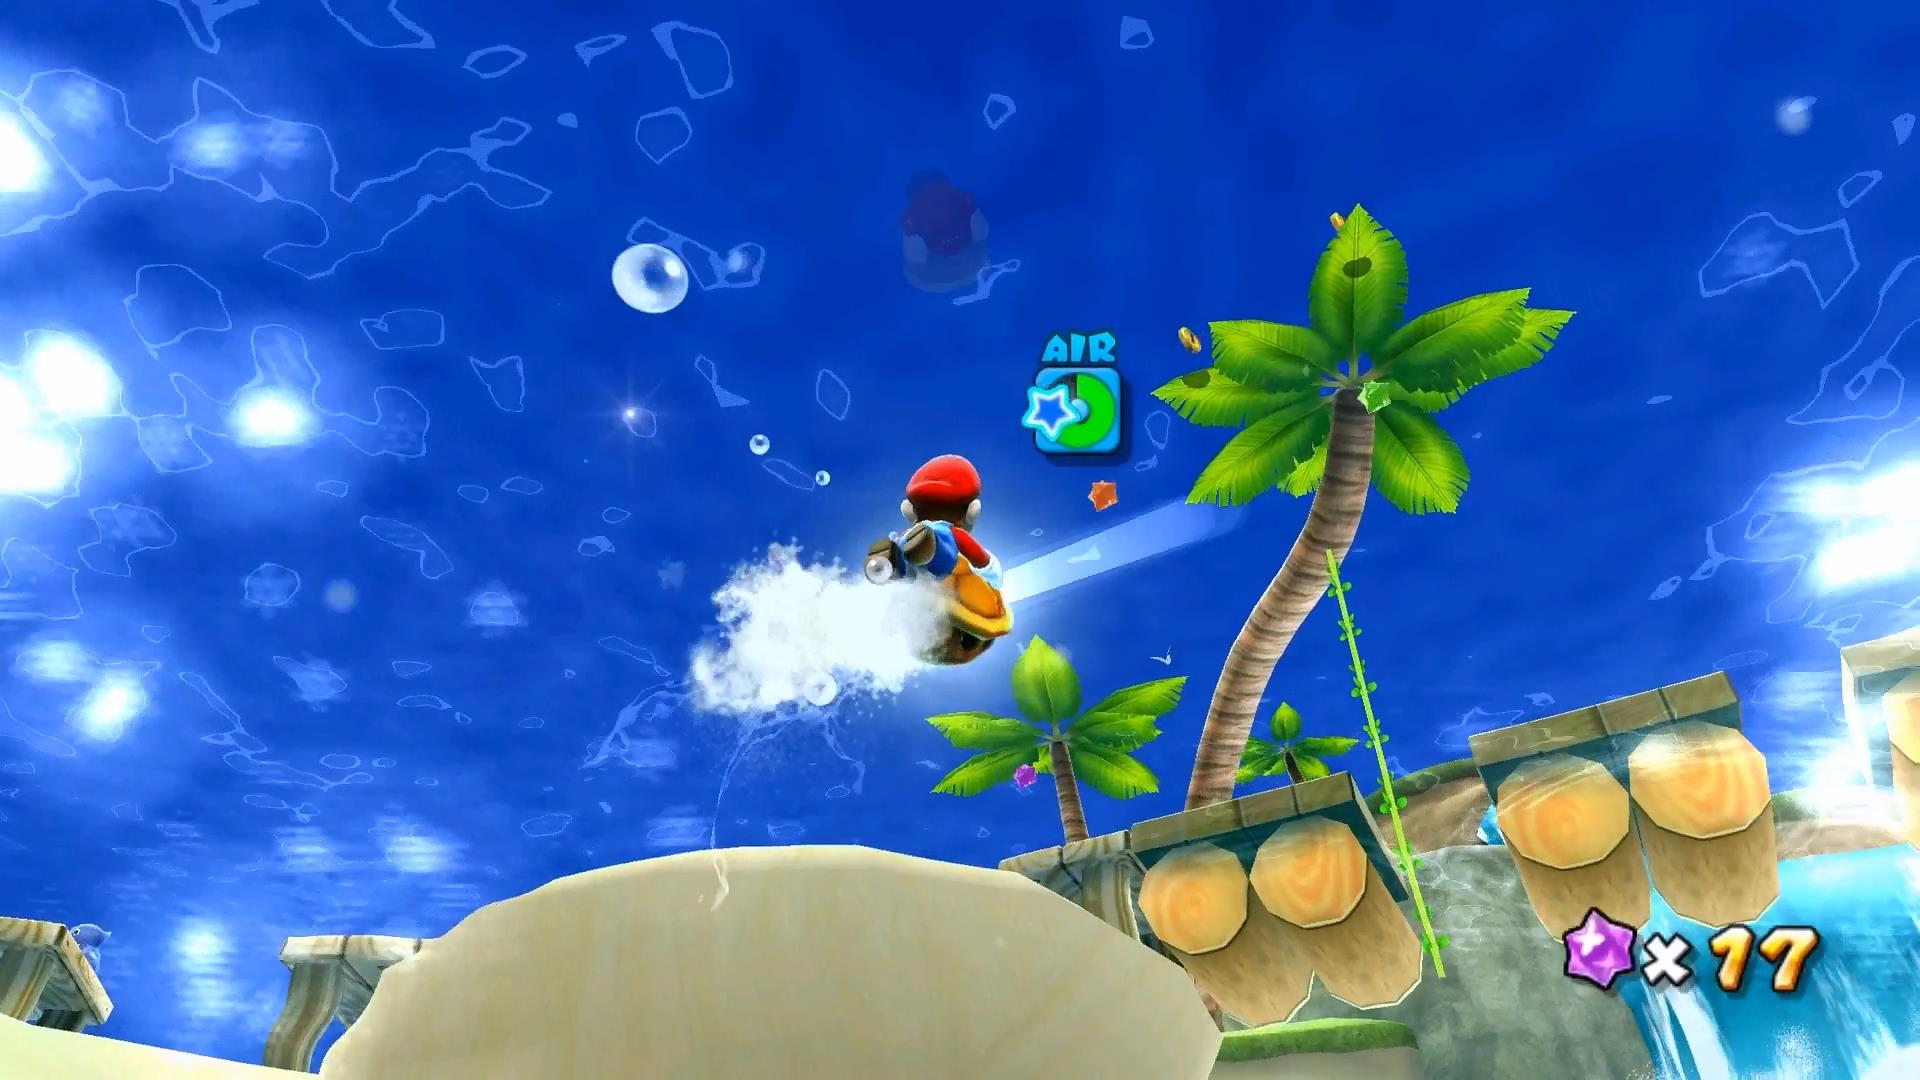 Dolphin emulator 4 0 2 download android | Dolphin Emulator Apk